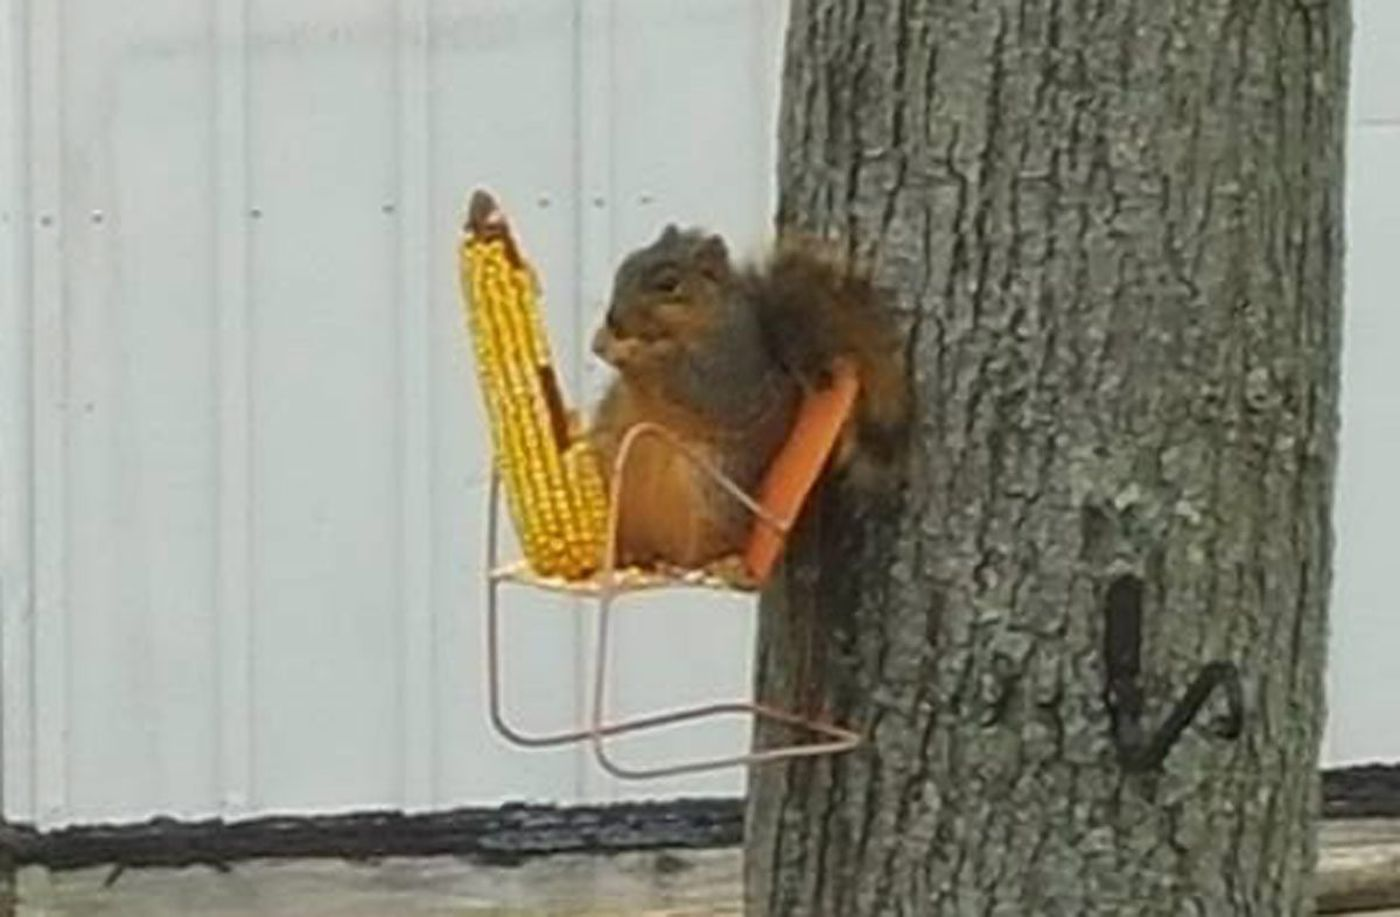 squirrel feeder chair wonderfully woven hanging sims 4 this has his own tree where he chills out